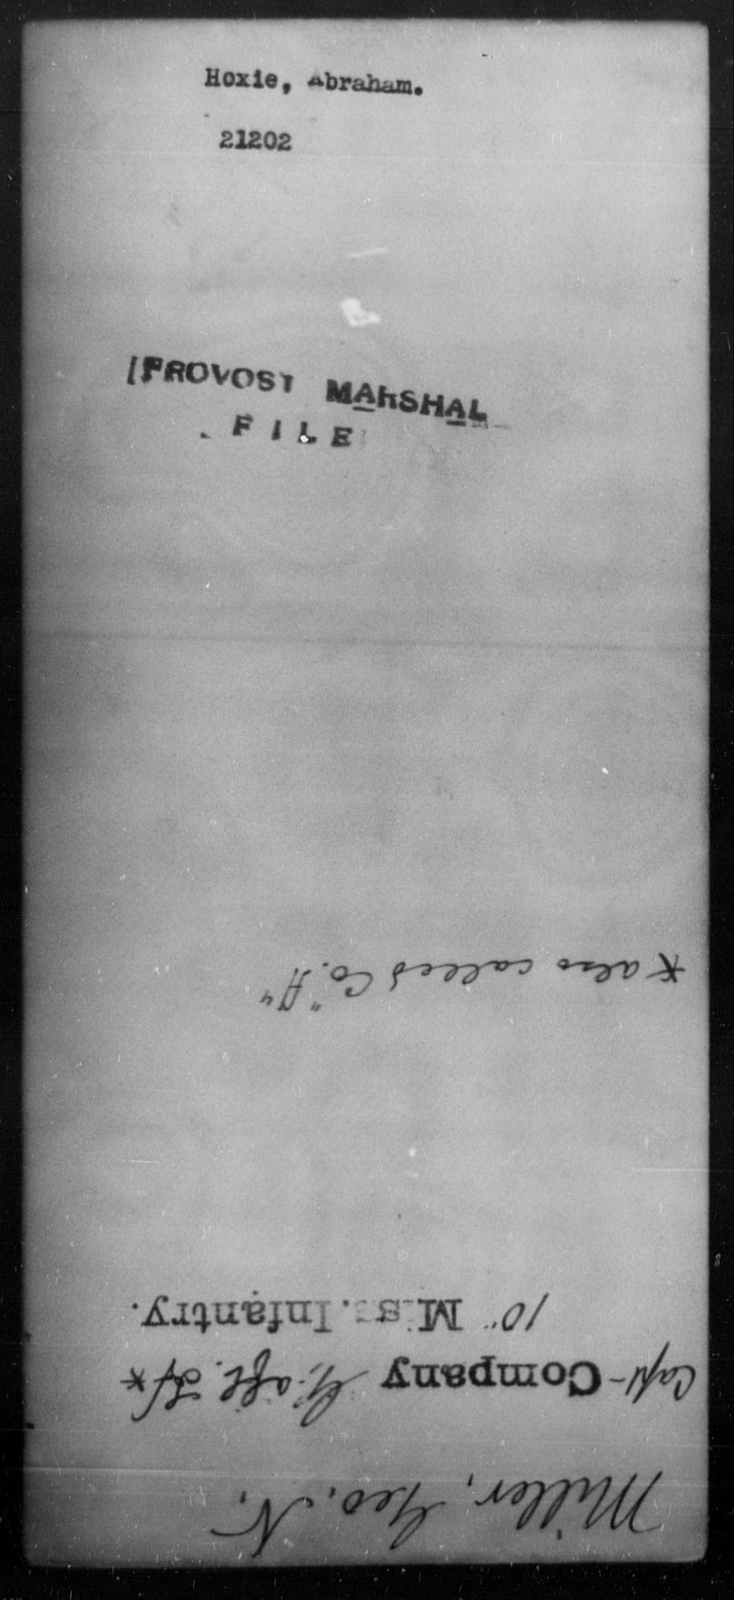 Hoxie, Abraham - State: [Blank] - Year: [Blank]